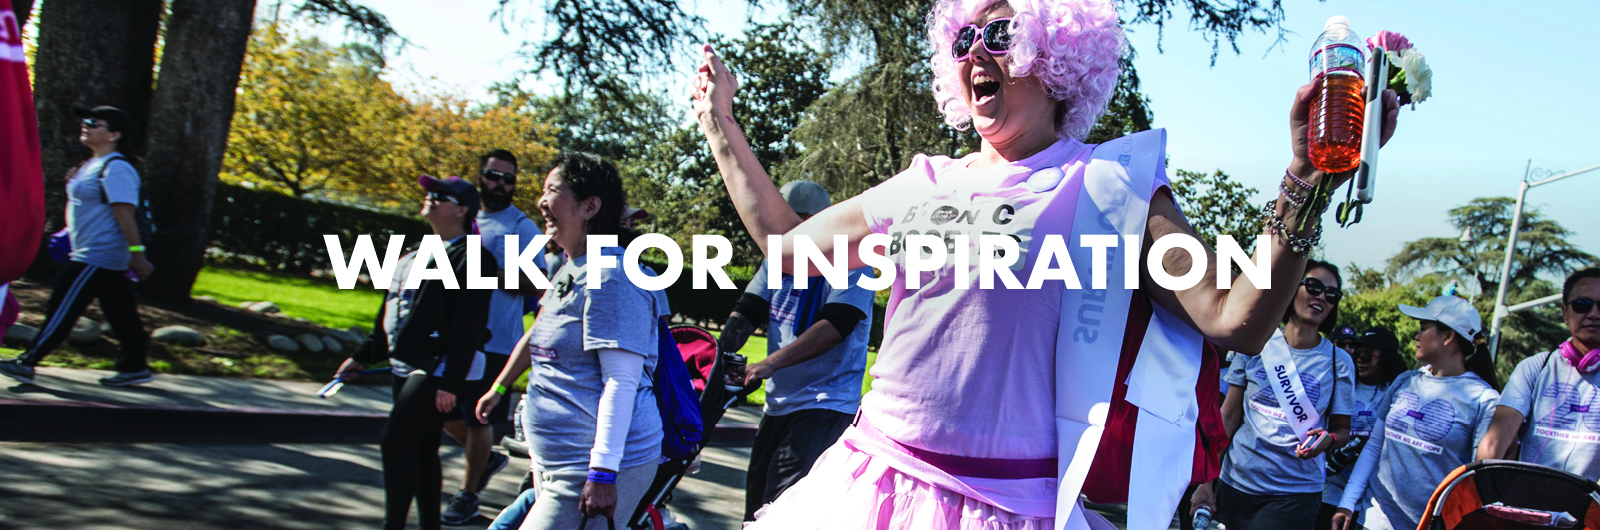 Walk for Inspiration